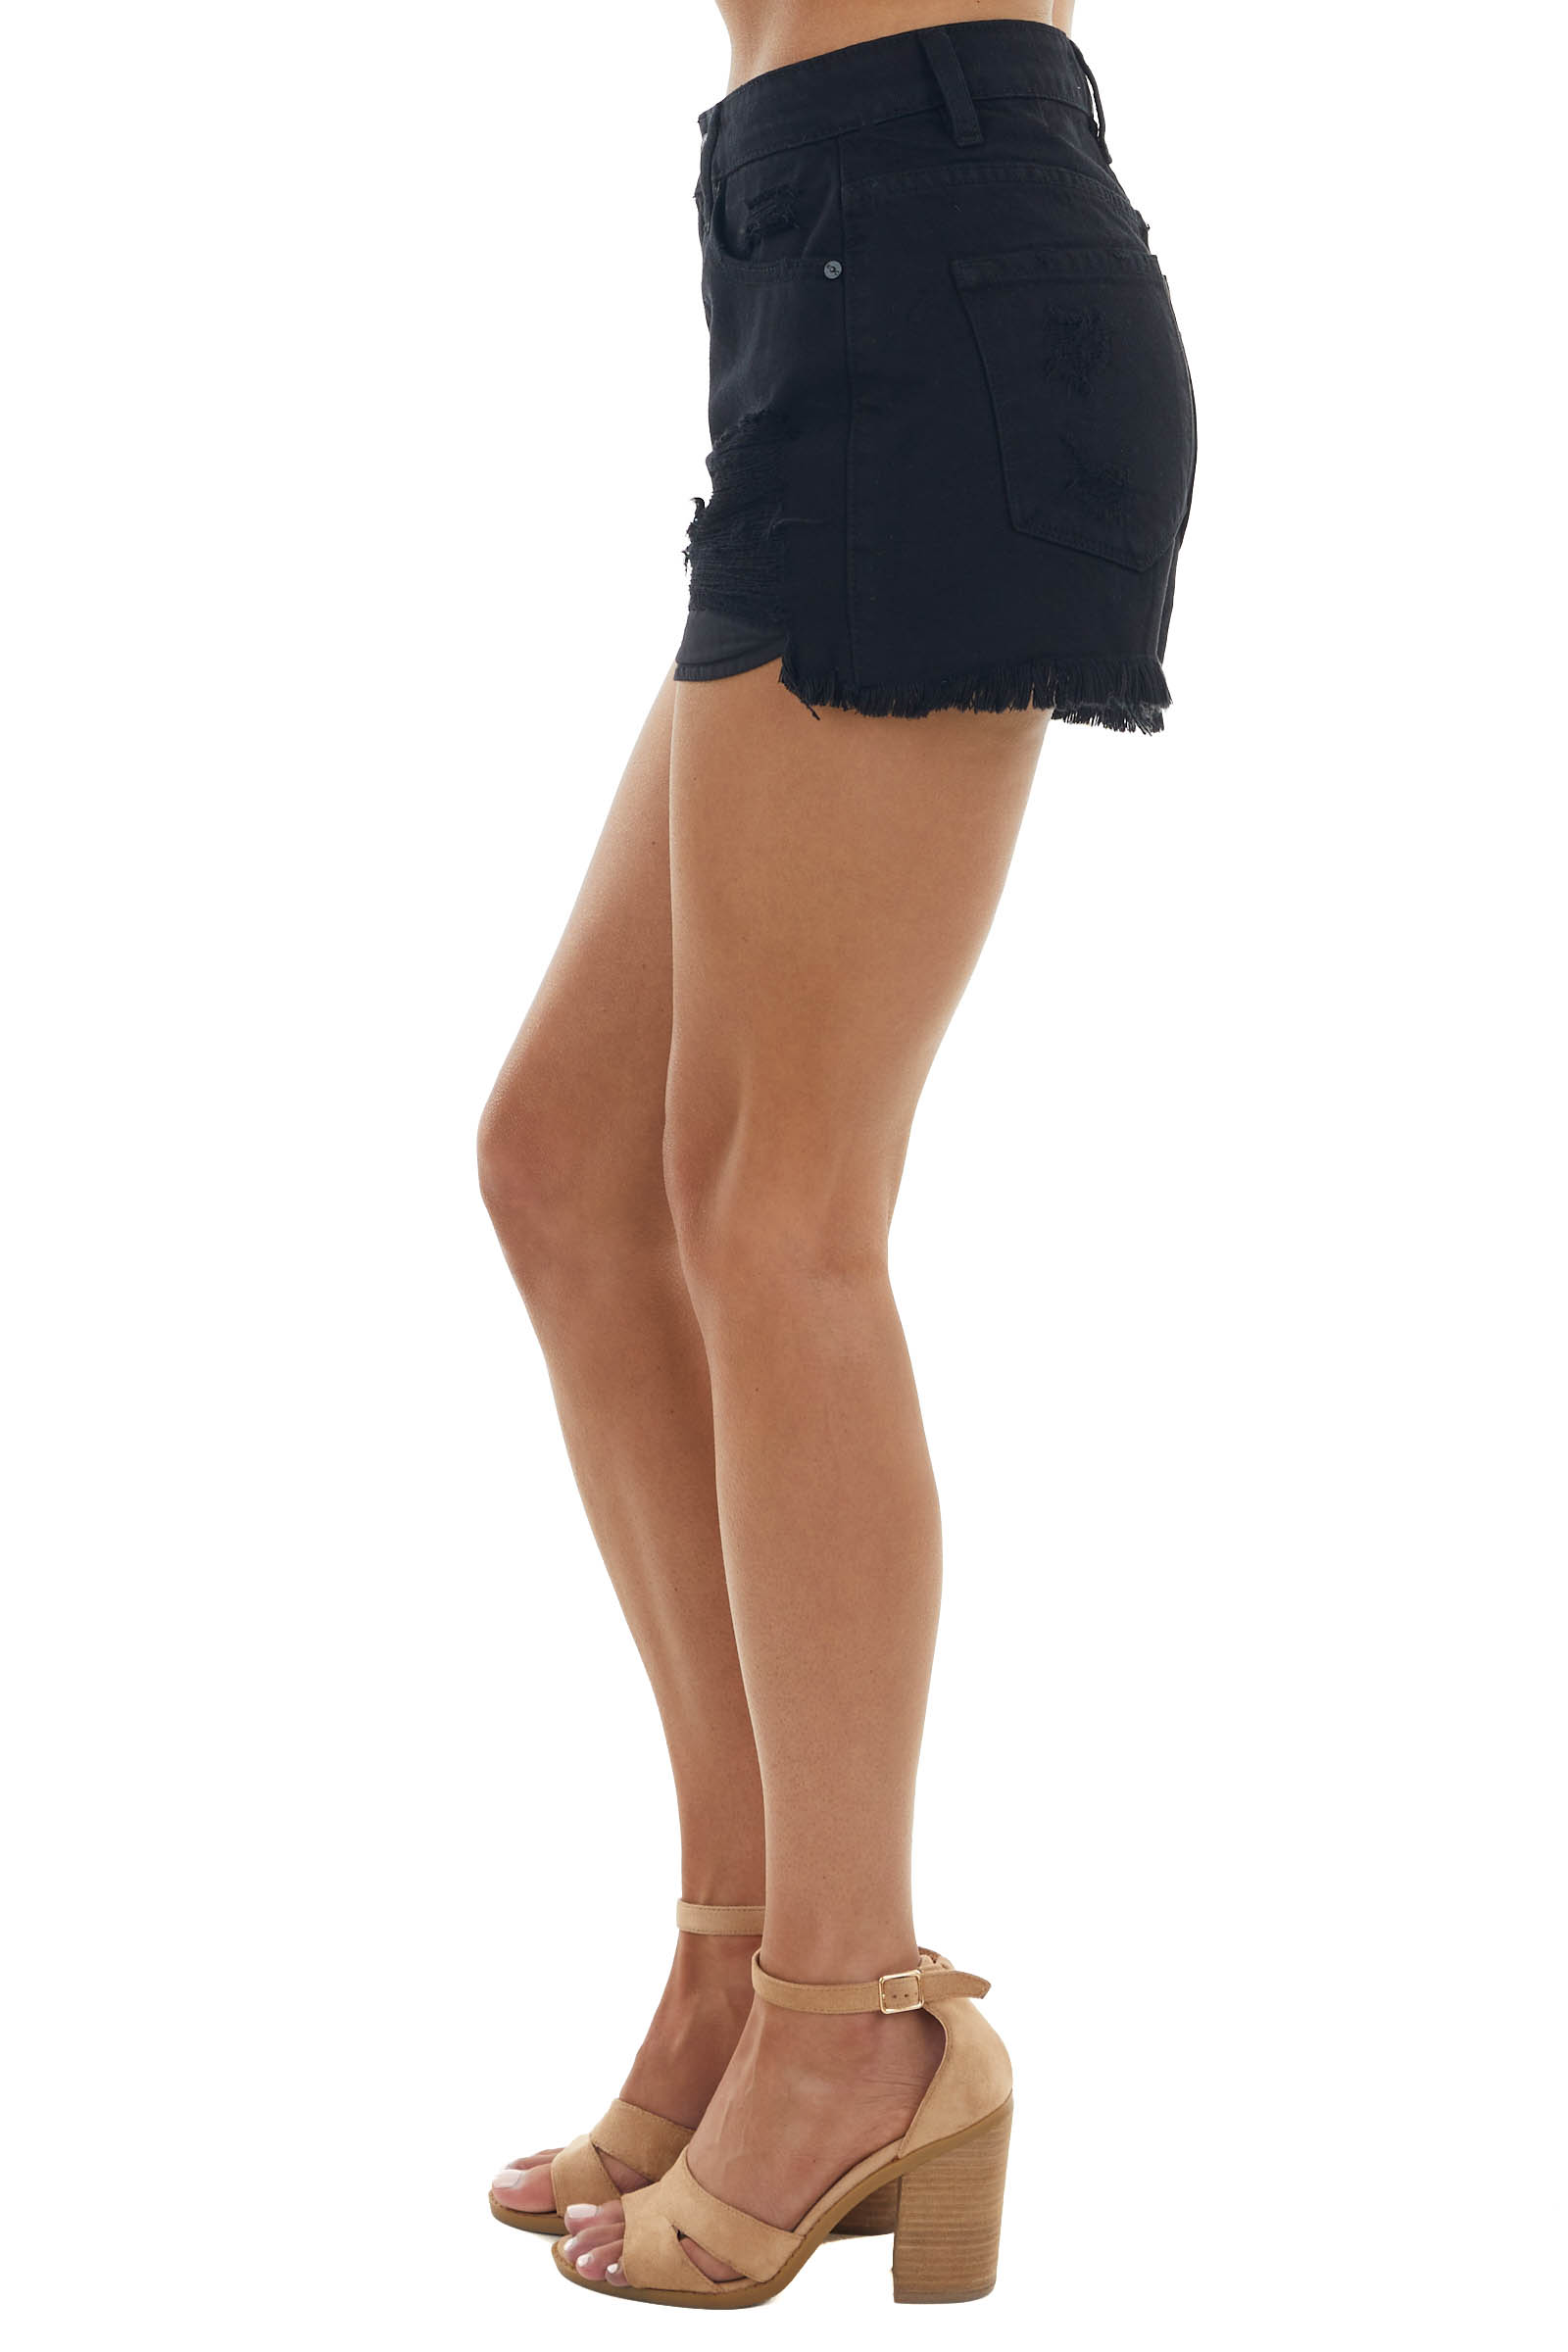 Black High Rise Jean Shorts with Distressed Details